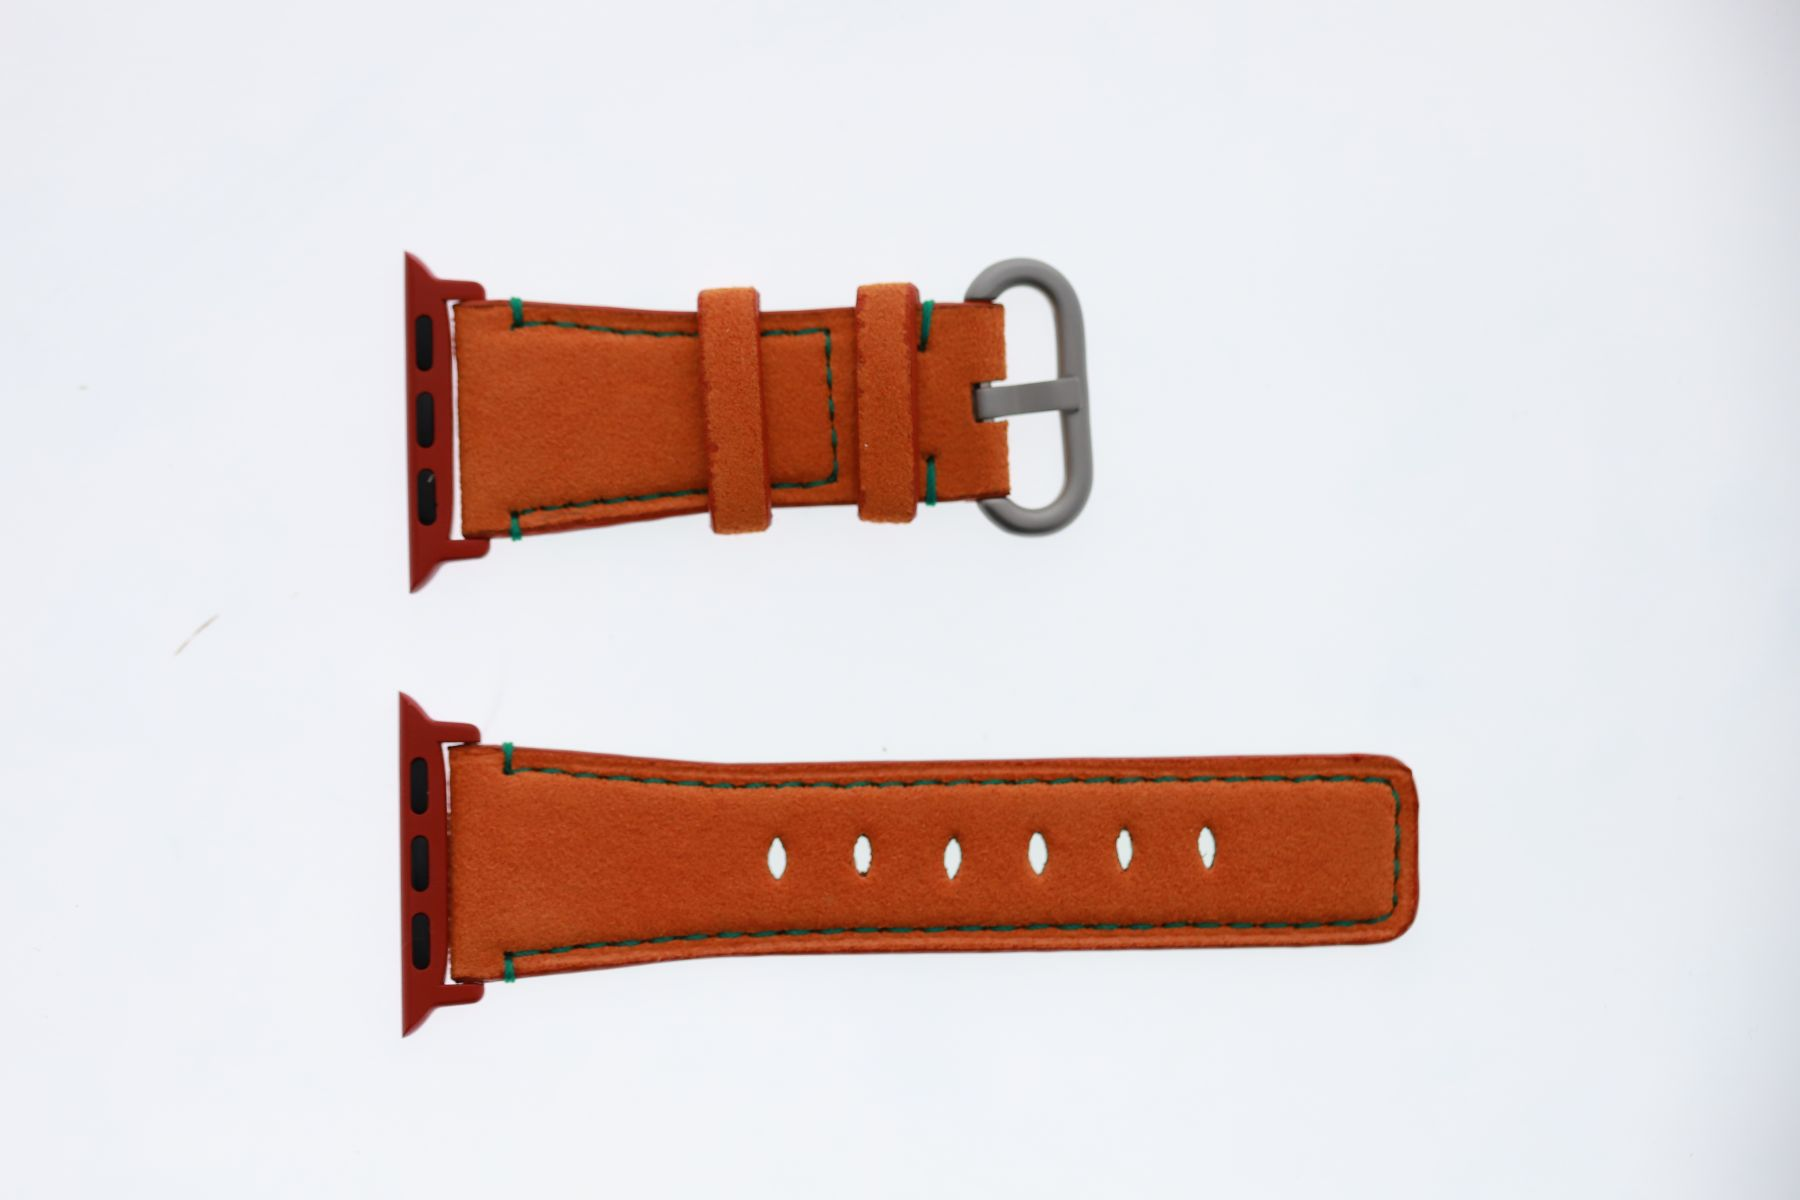 Band for Tiny Wrist (Apple Watch 38mm, 40mm) in ORANGE